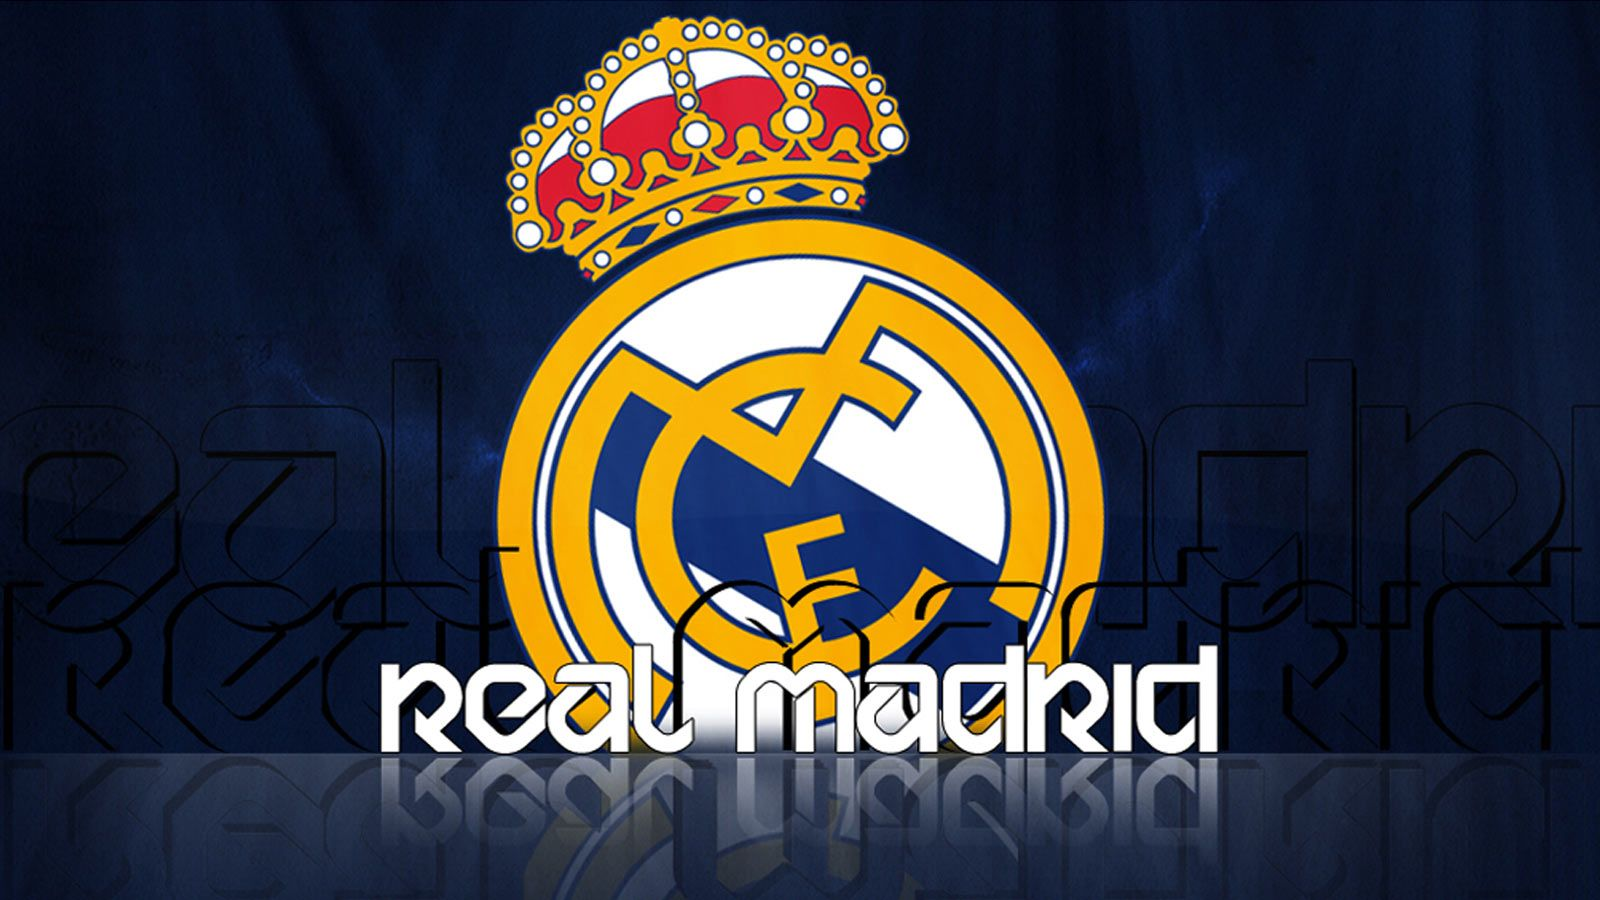 Real Madrid New Jersey 2021 Live Wallpaper Hd Real Madrid Logo Wallpapers Madrid Wallpaper Real Madrid Wallpapers